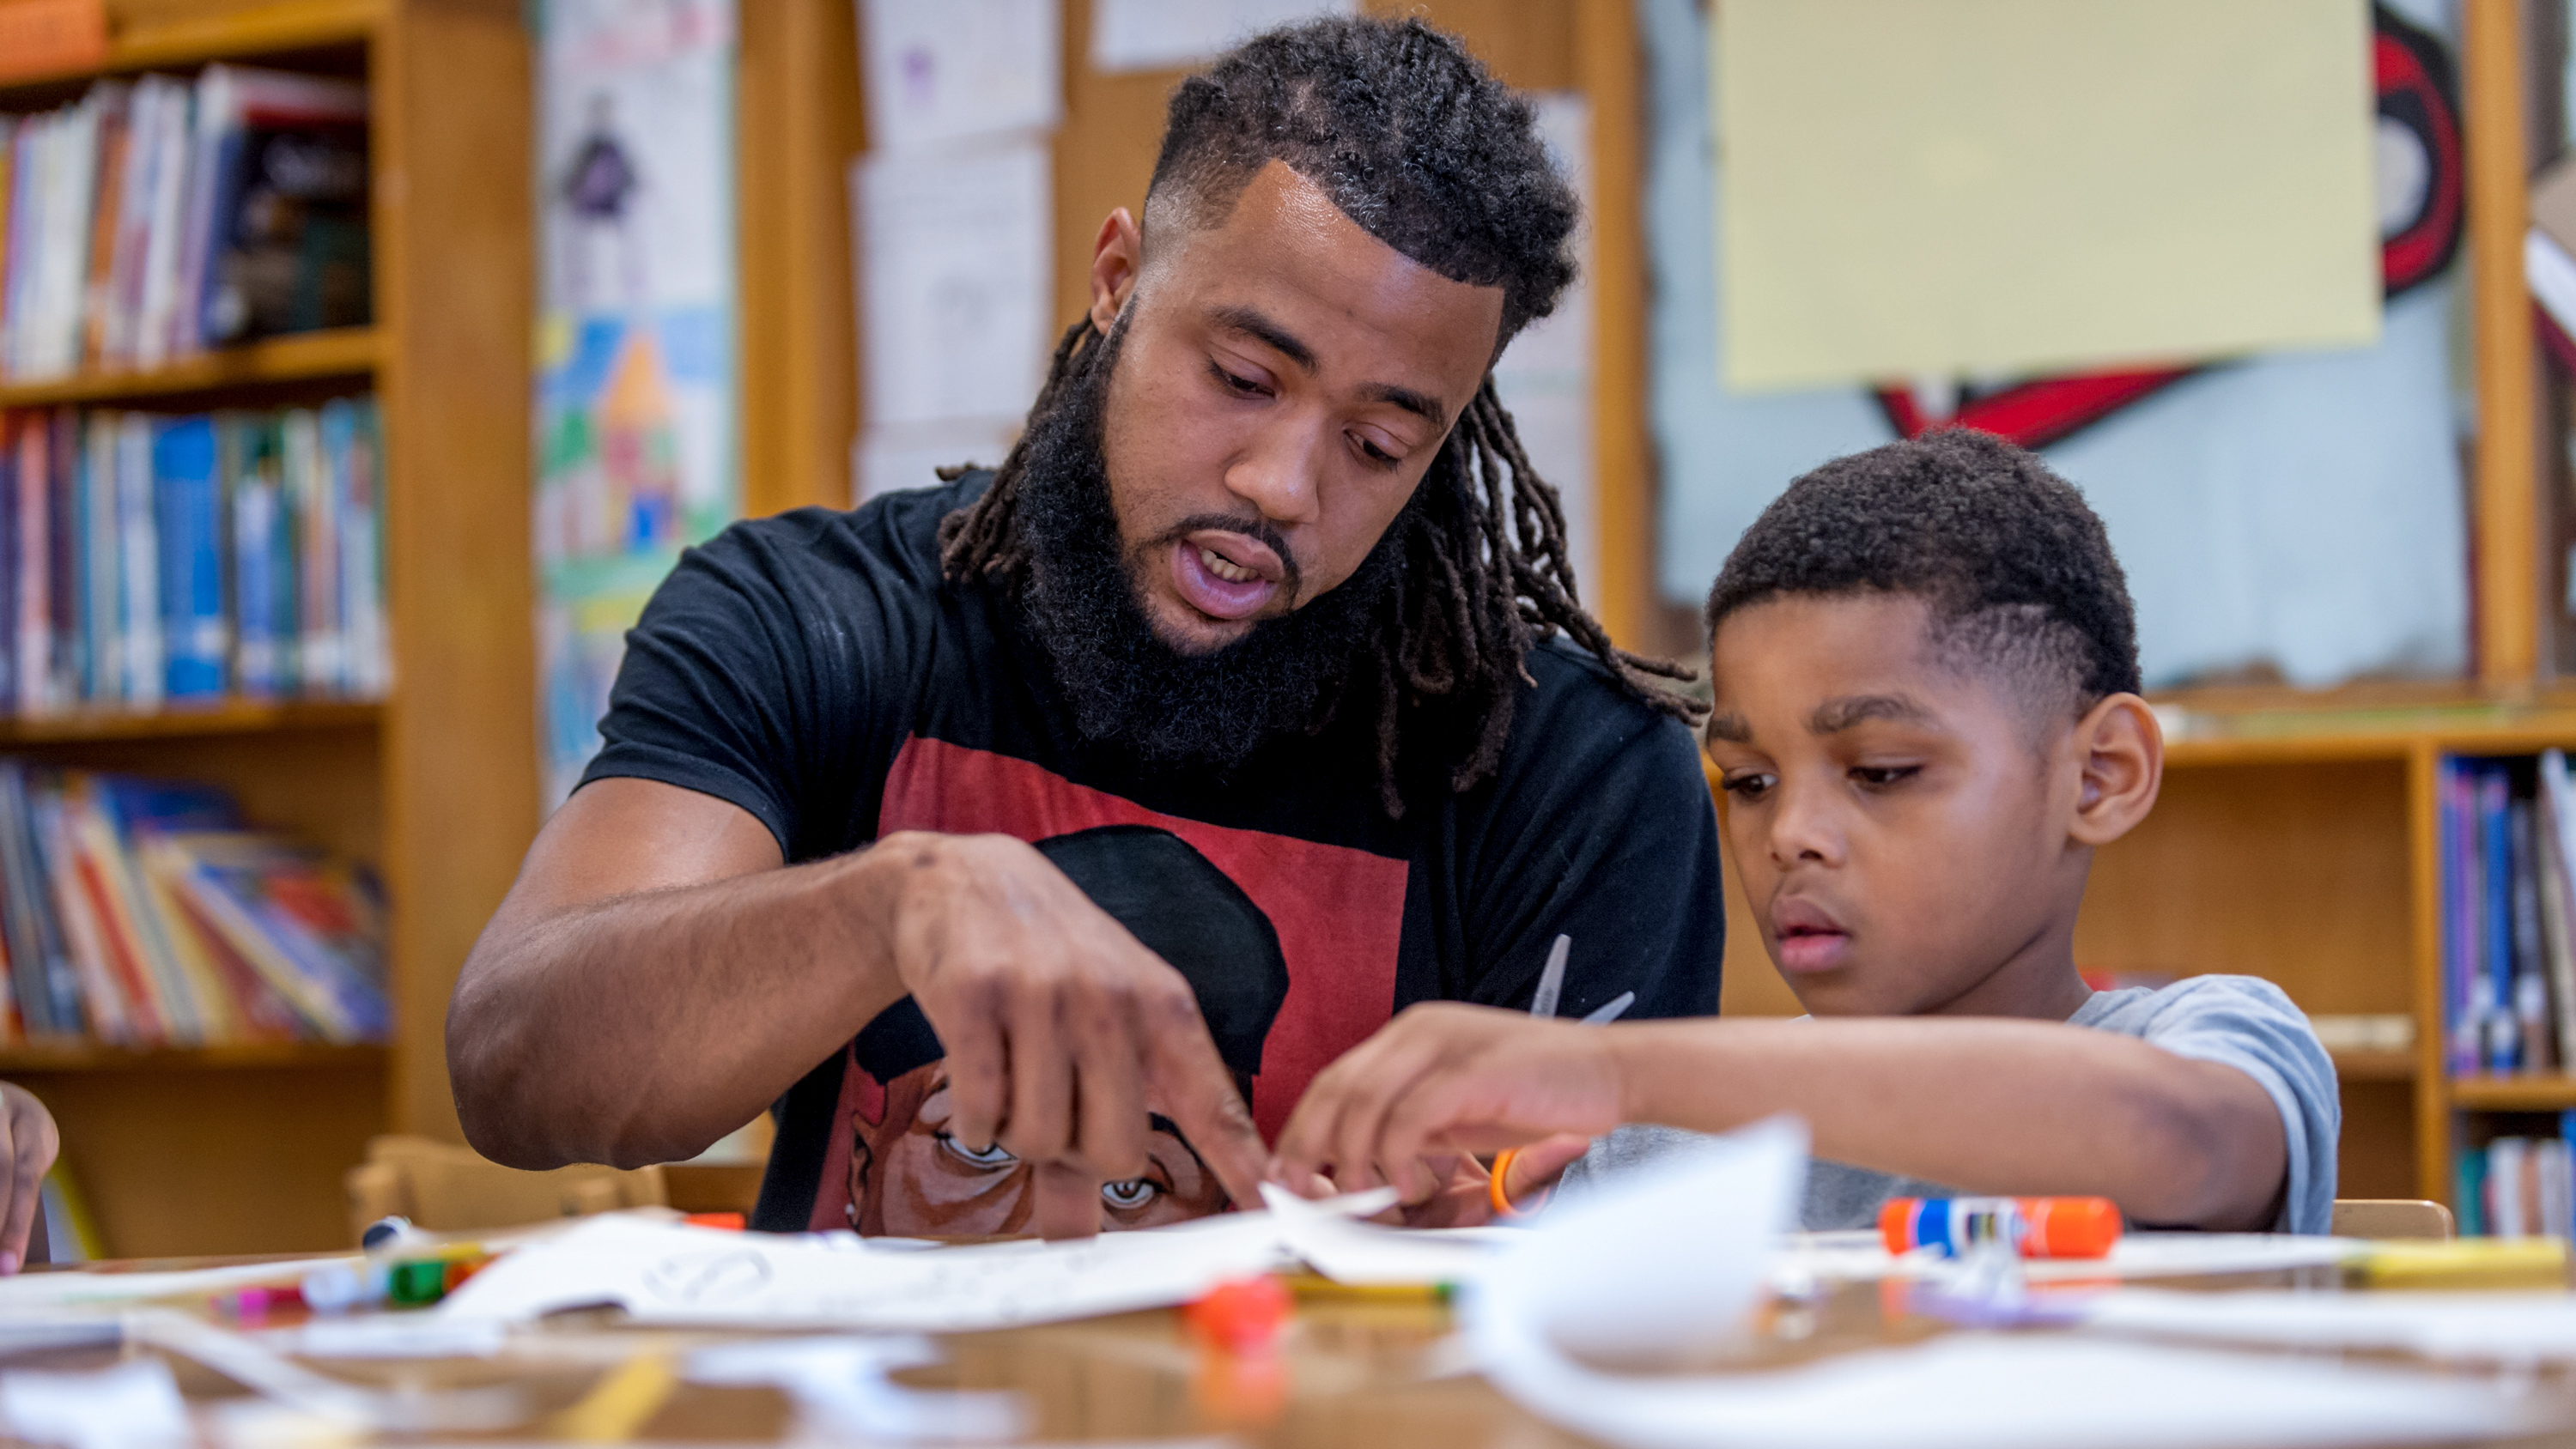 Aaron Maybin, formally an all-American linebacker at Penn State came home to inner-city Baltimore to teach art and literacy at Matthew A. Henson Elementary School.